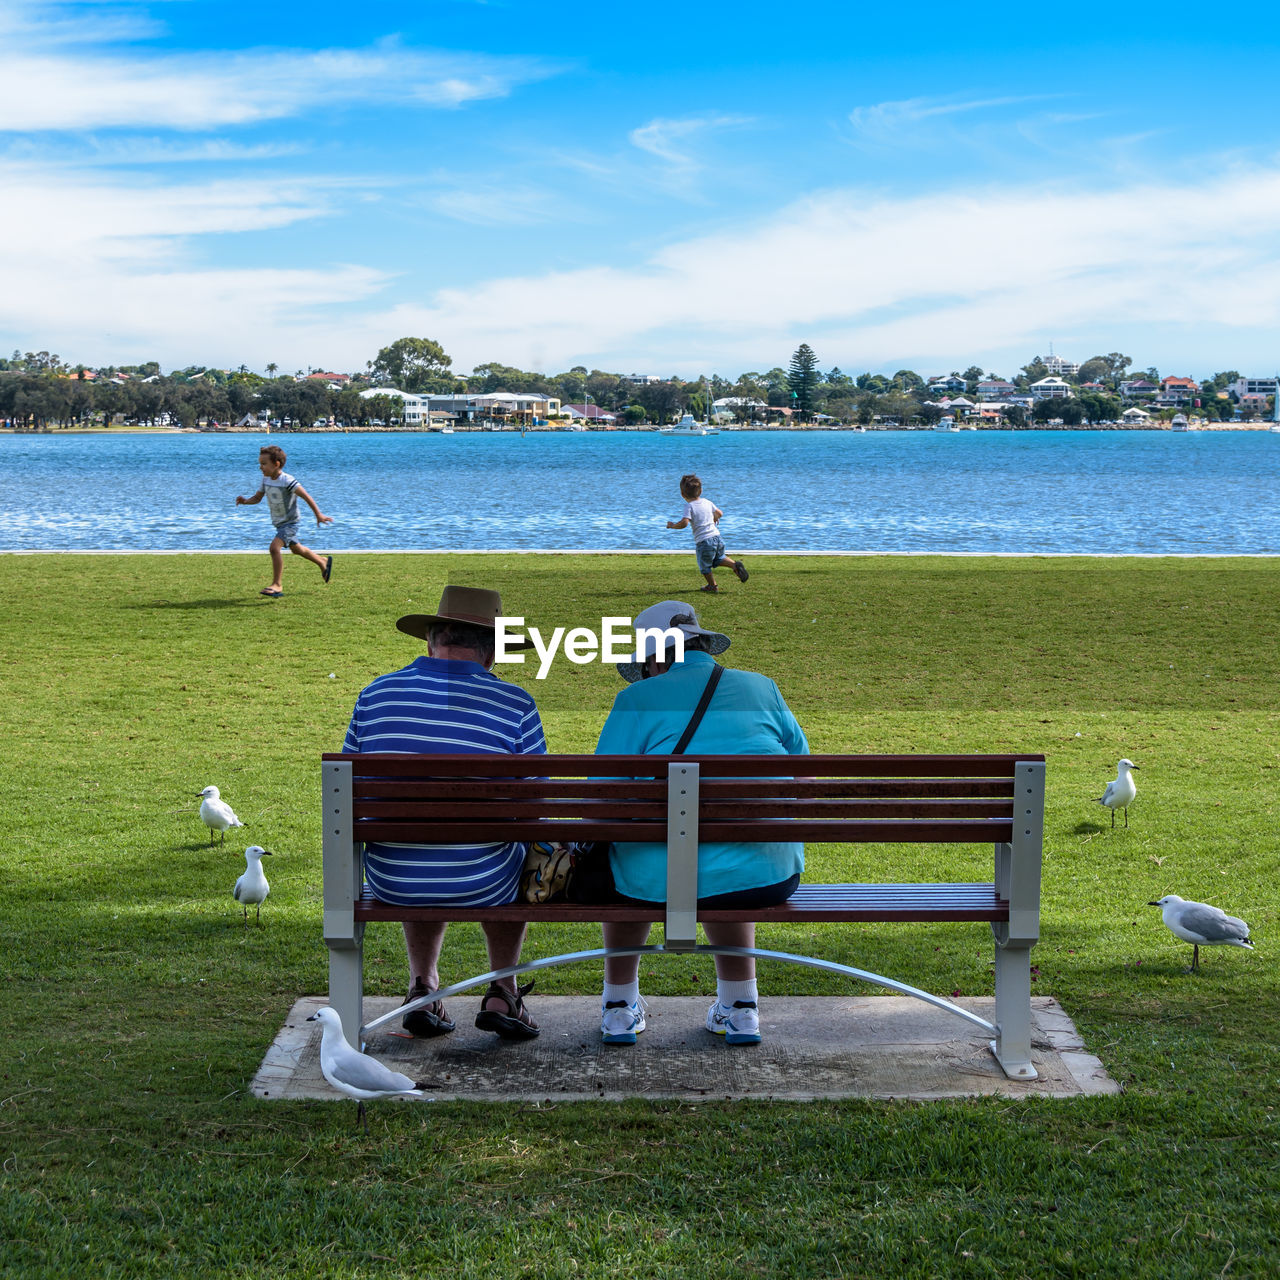 water, real people, sky, men, grass, nature, day, leisure activity, cloud - sky, land, togetherness, lifestyles, sitting, group of people, people, full length, sea, plant, rear view, outdoors